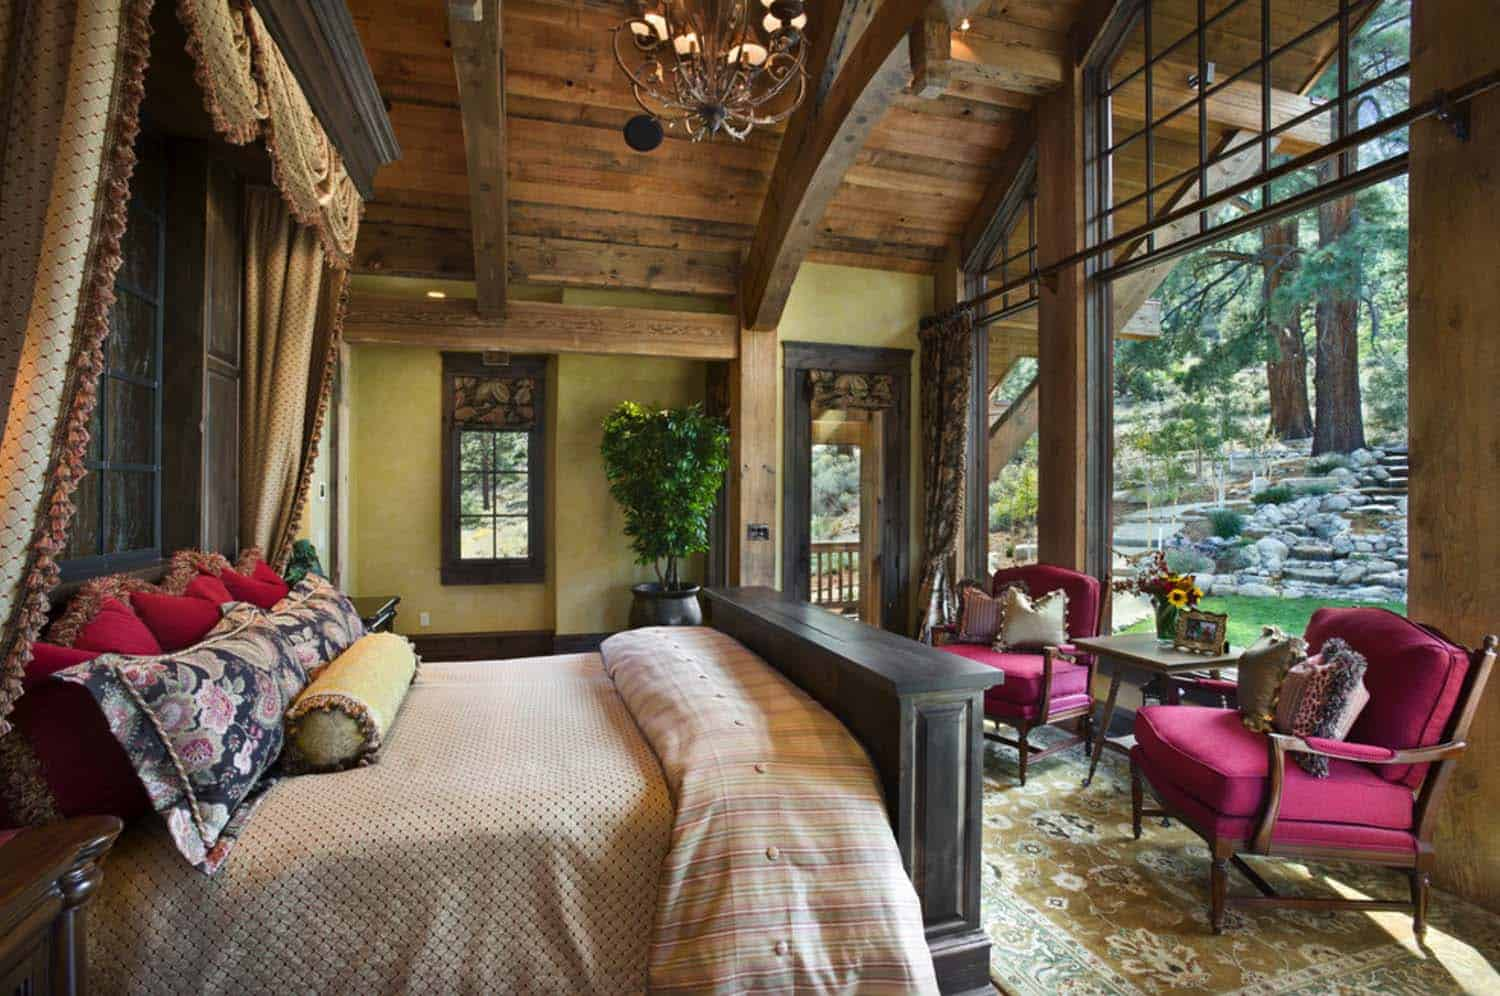 Amazing Cozy-Rustic Bedrooms-36-1 Kindesign